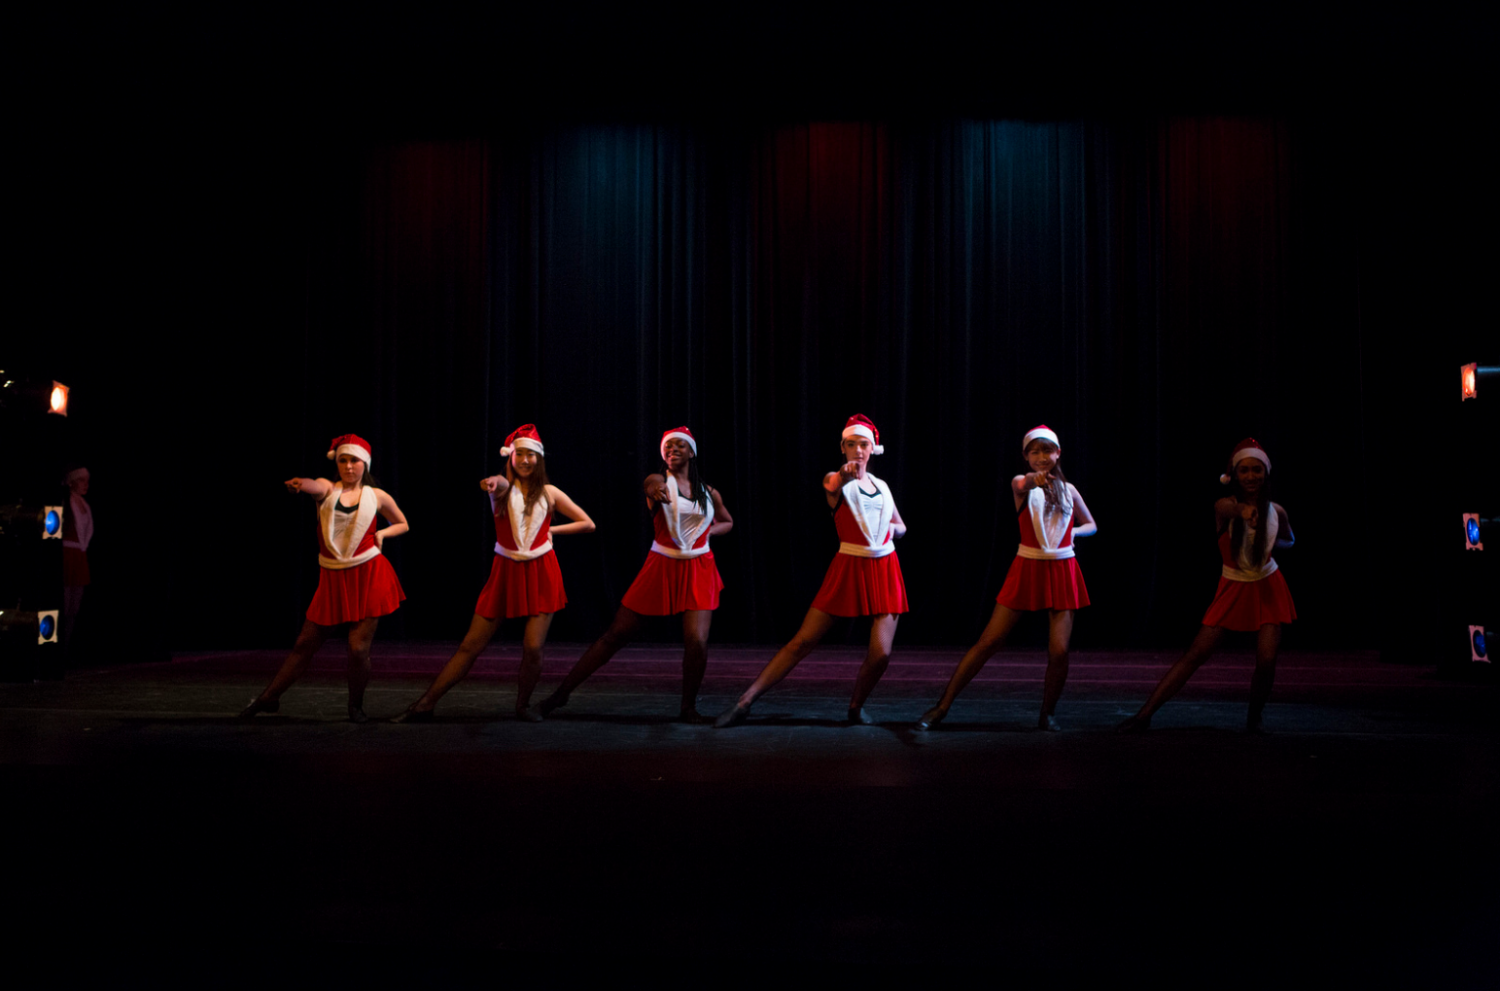 Gabby+%28far+left%29%2C+Destiny+%28third+from+left%29%2C+and+Makenna+%28fourth+from+left%29+perform+as+Rockettes+in+the+fall+dance+concert+Contagion.+Credit%3A+Flickr.